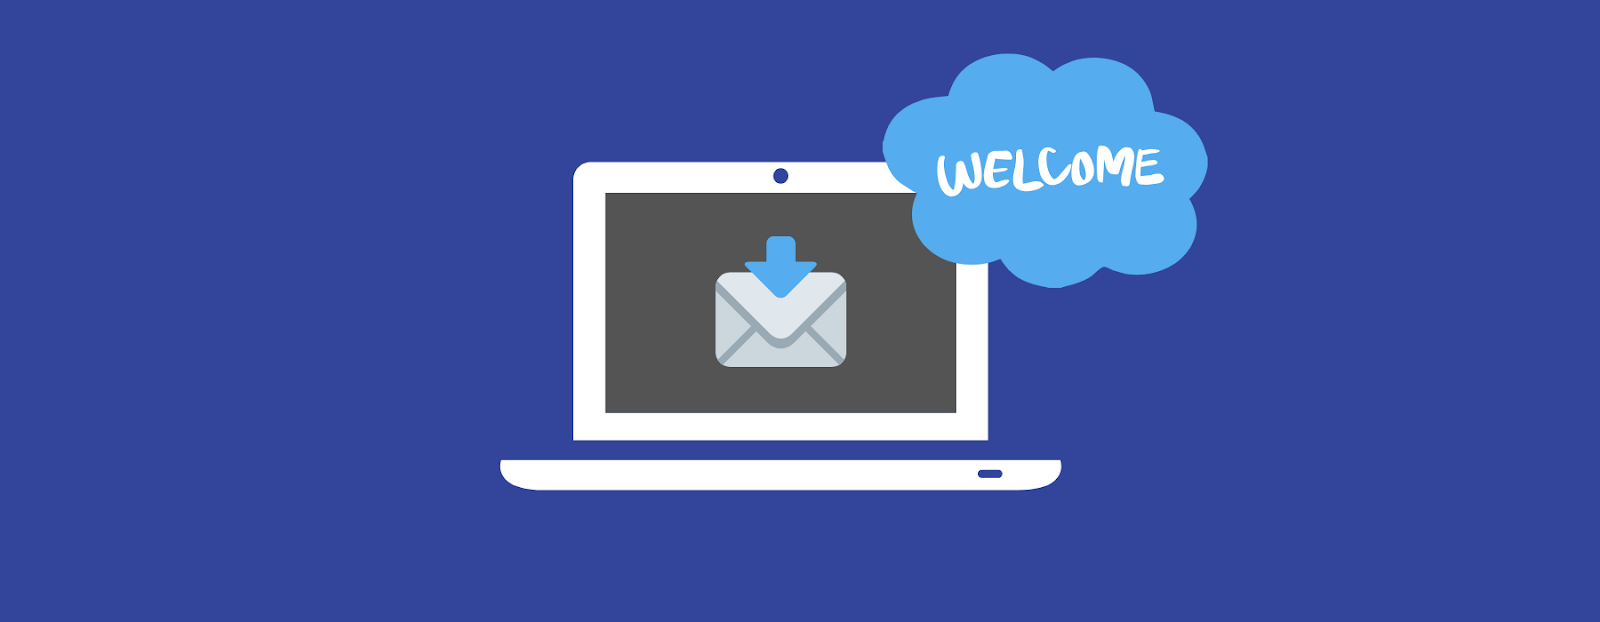 Four Ideas for Welcome Emails to Drive Customer Loyalty